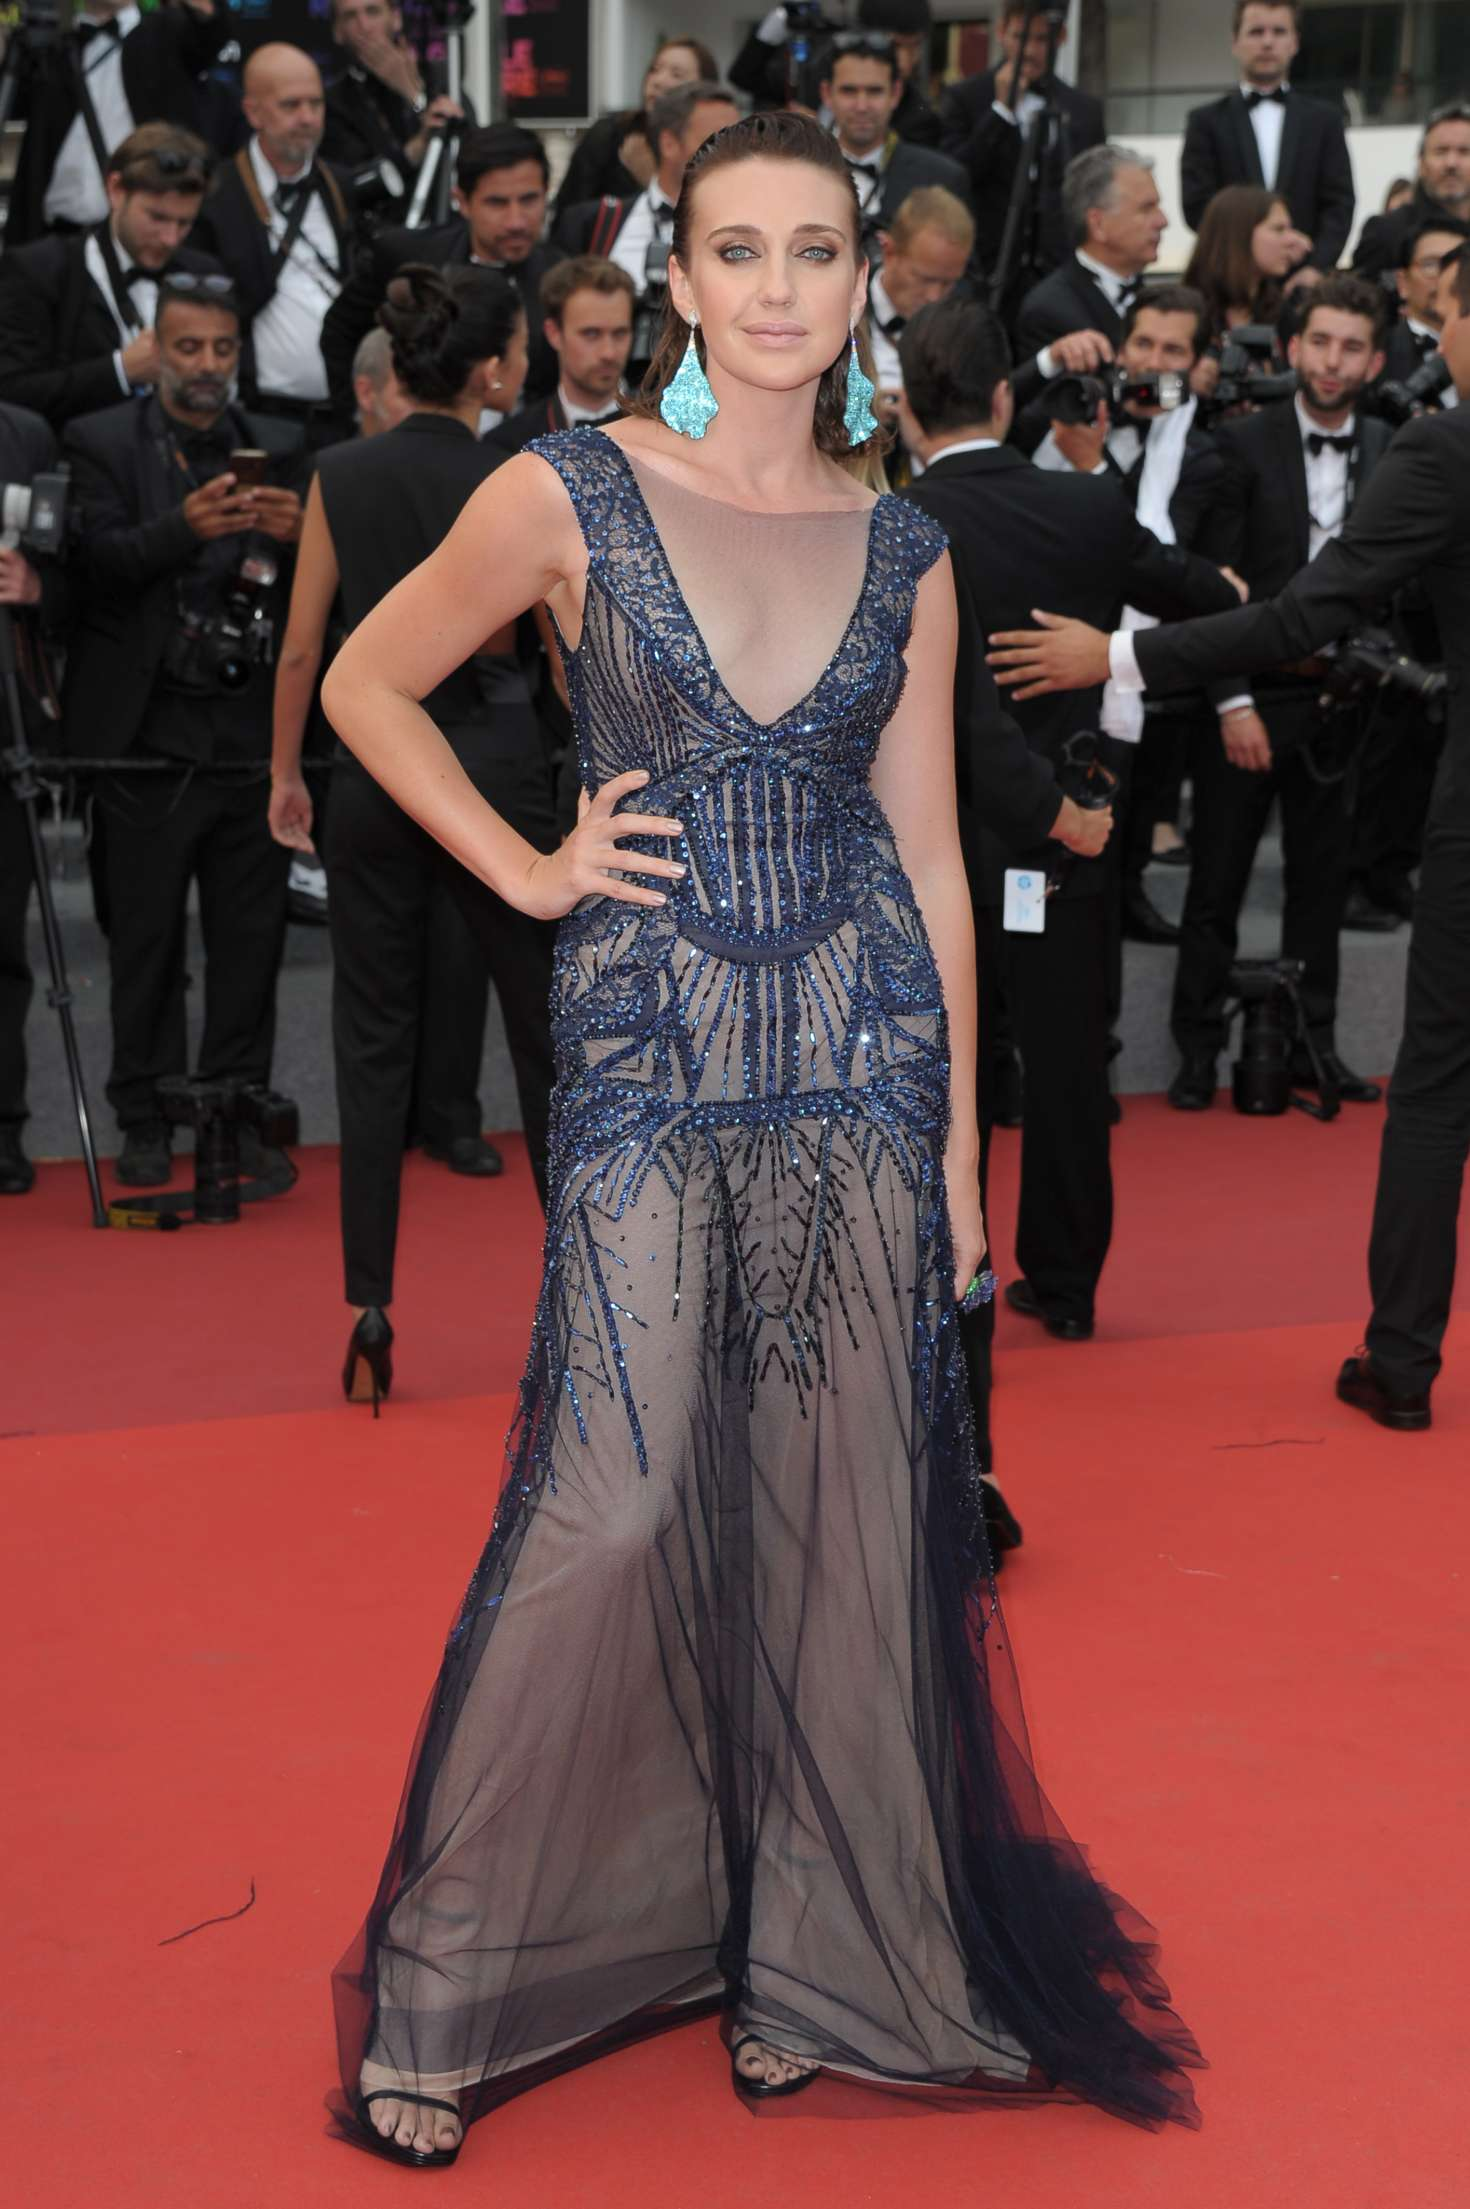 Anna Schafer 2017 : Anna Schafer: The Double Lover Premiere at 70th Cannes Film Festival -04